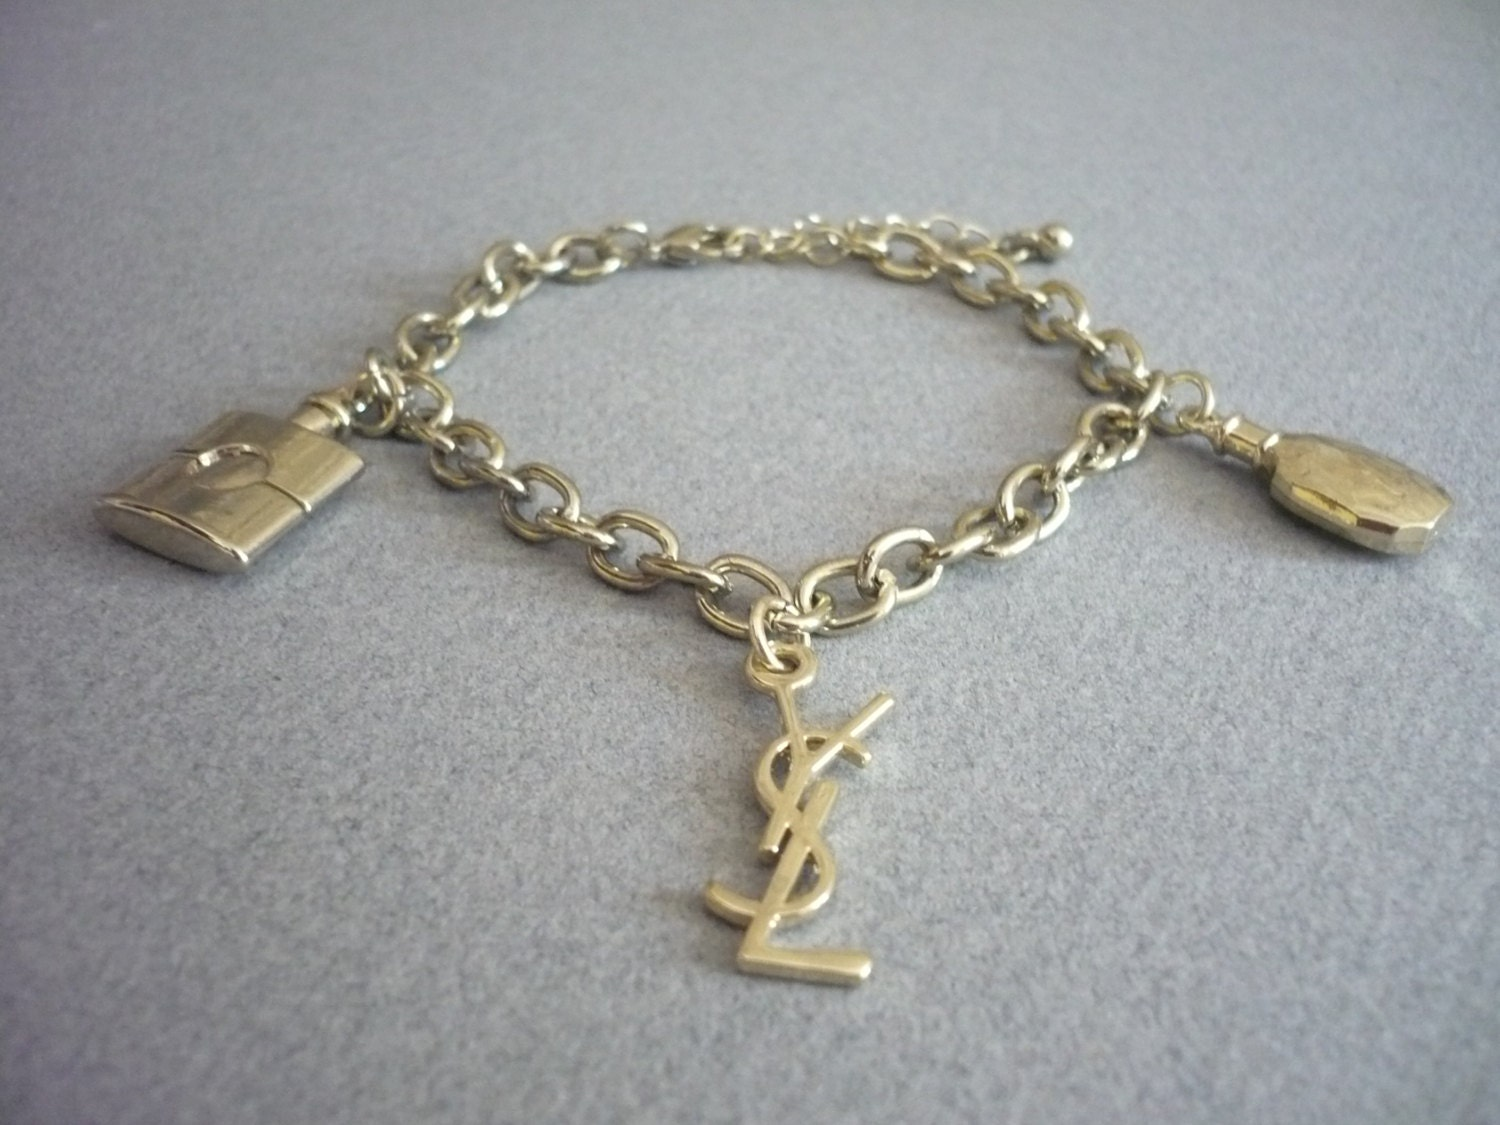 Yves saint laurent ysl bracelet by xdivinex on etsy - Bracelet yves saint laurent ...